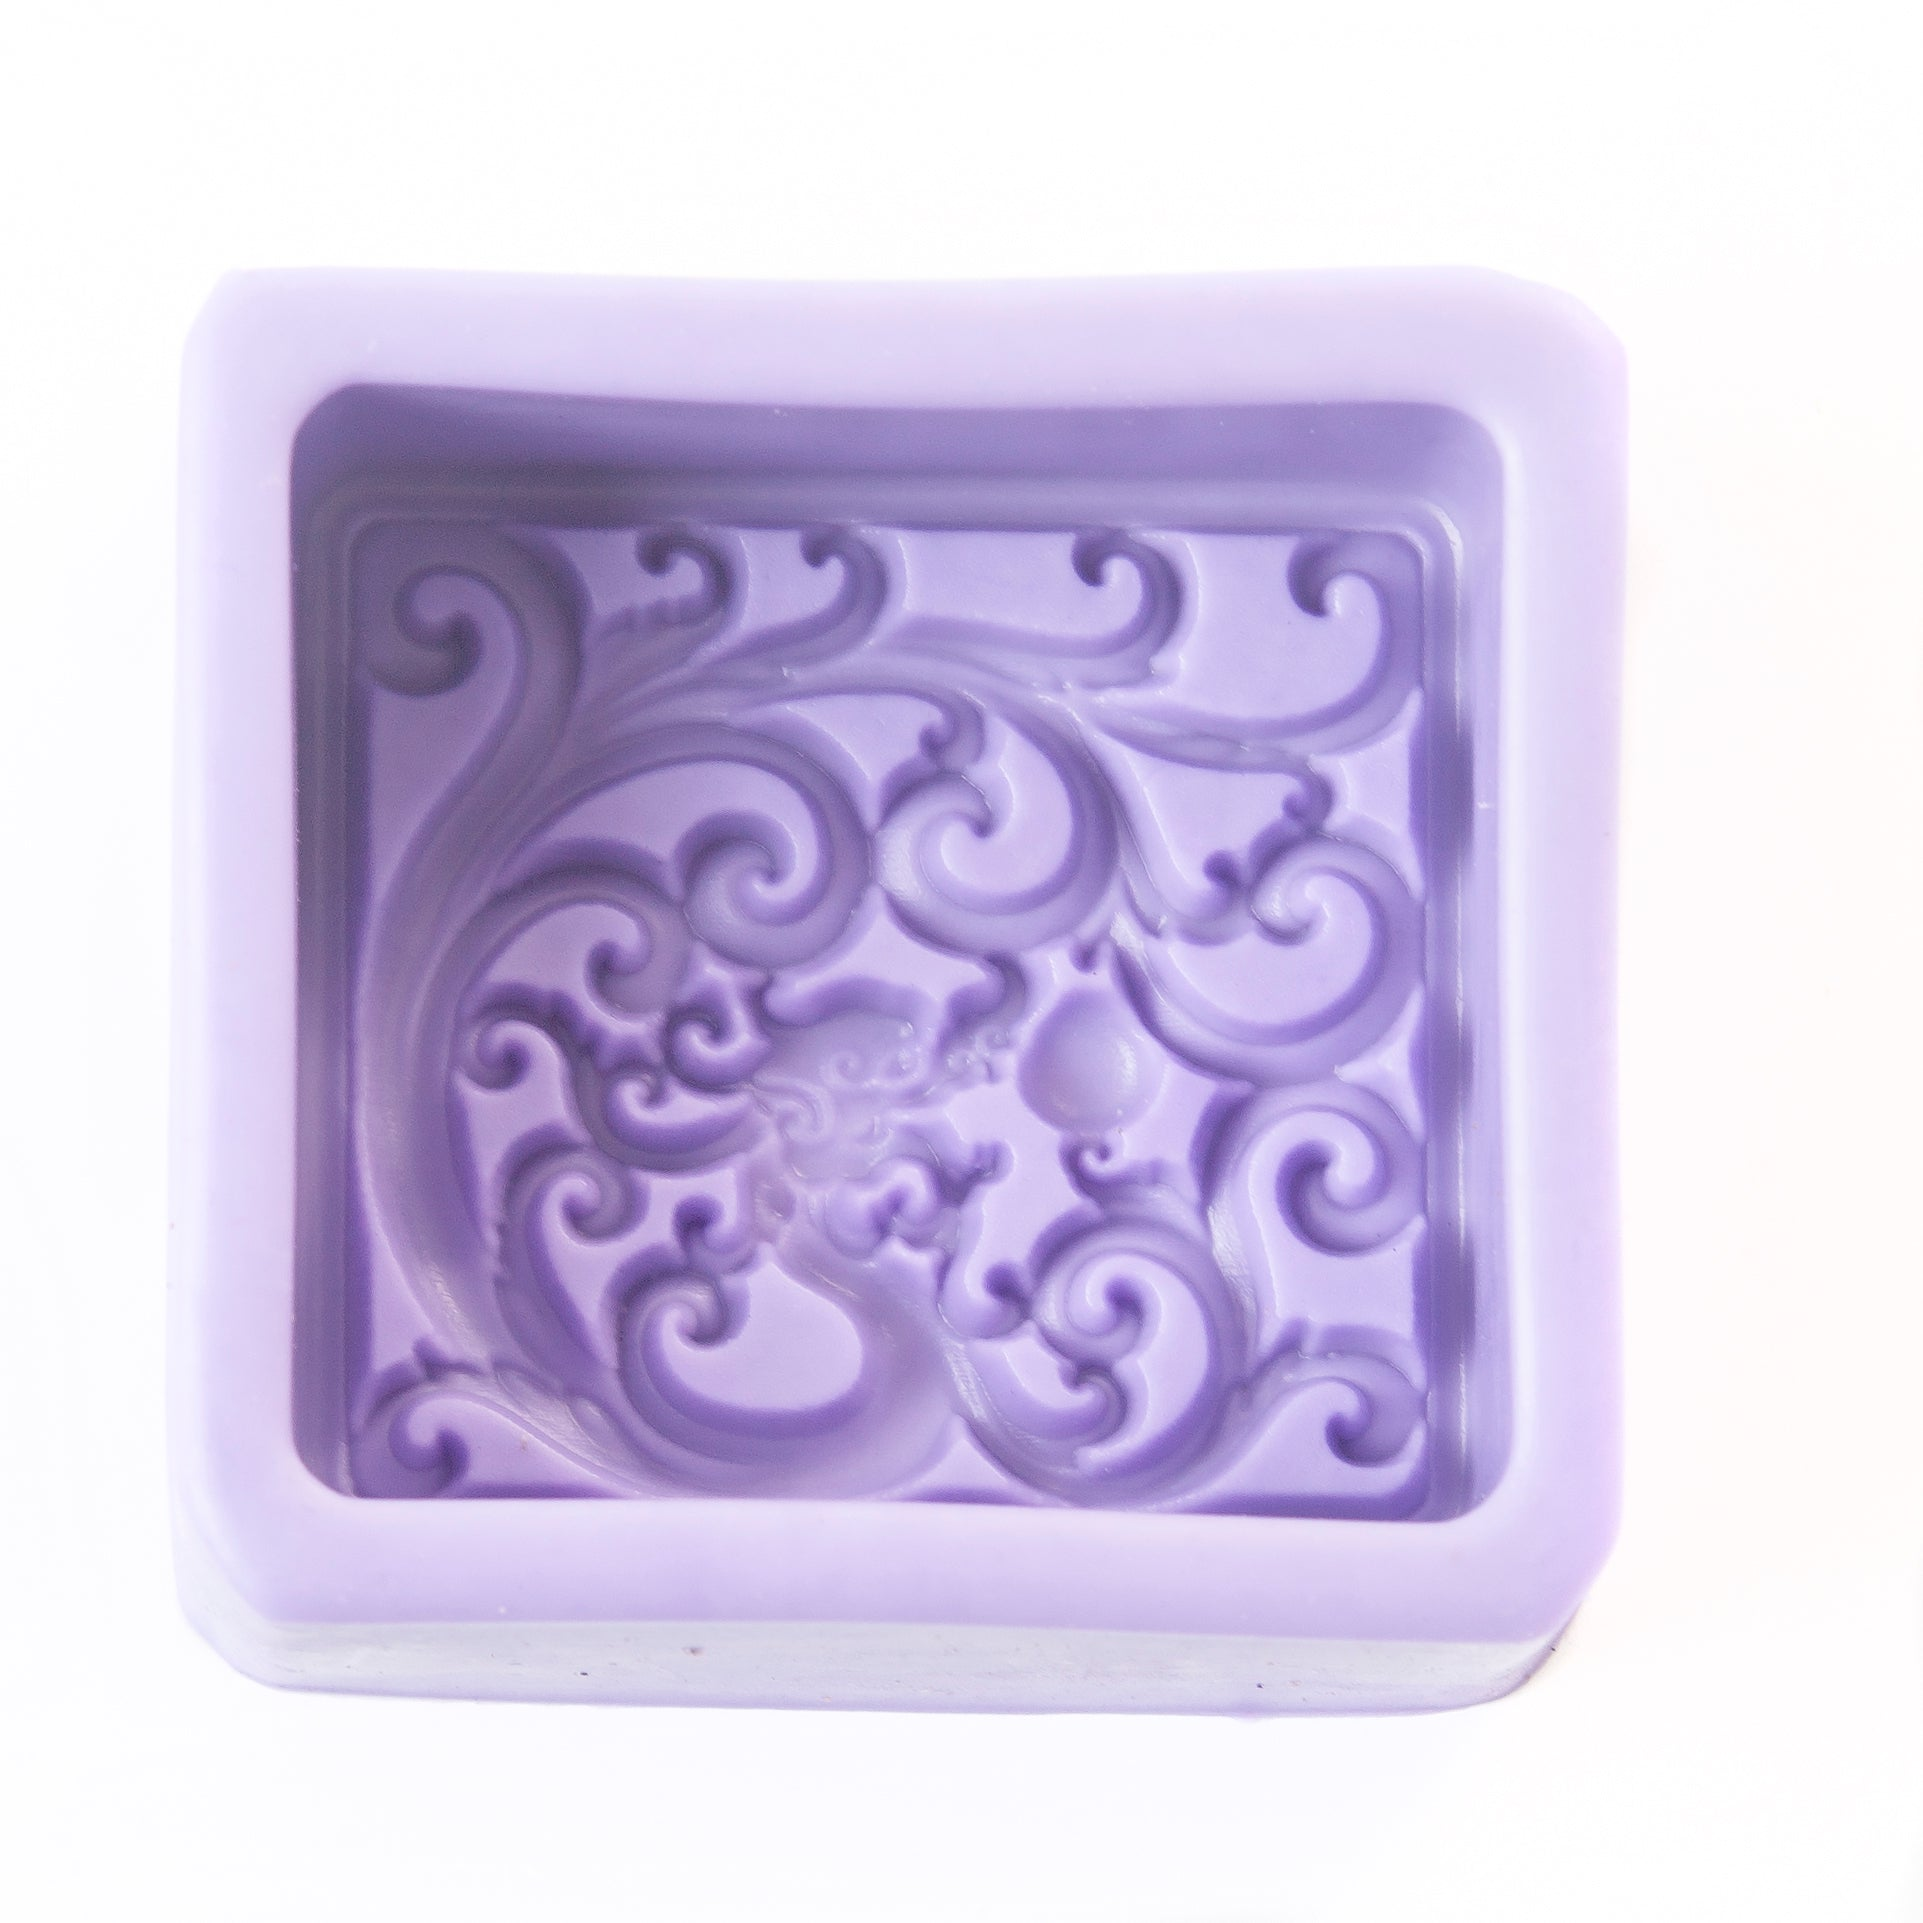 Classic Square with Fractal Waves Silicone Mould R0330